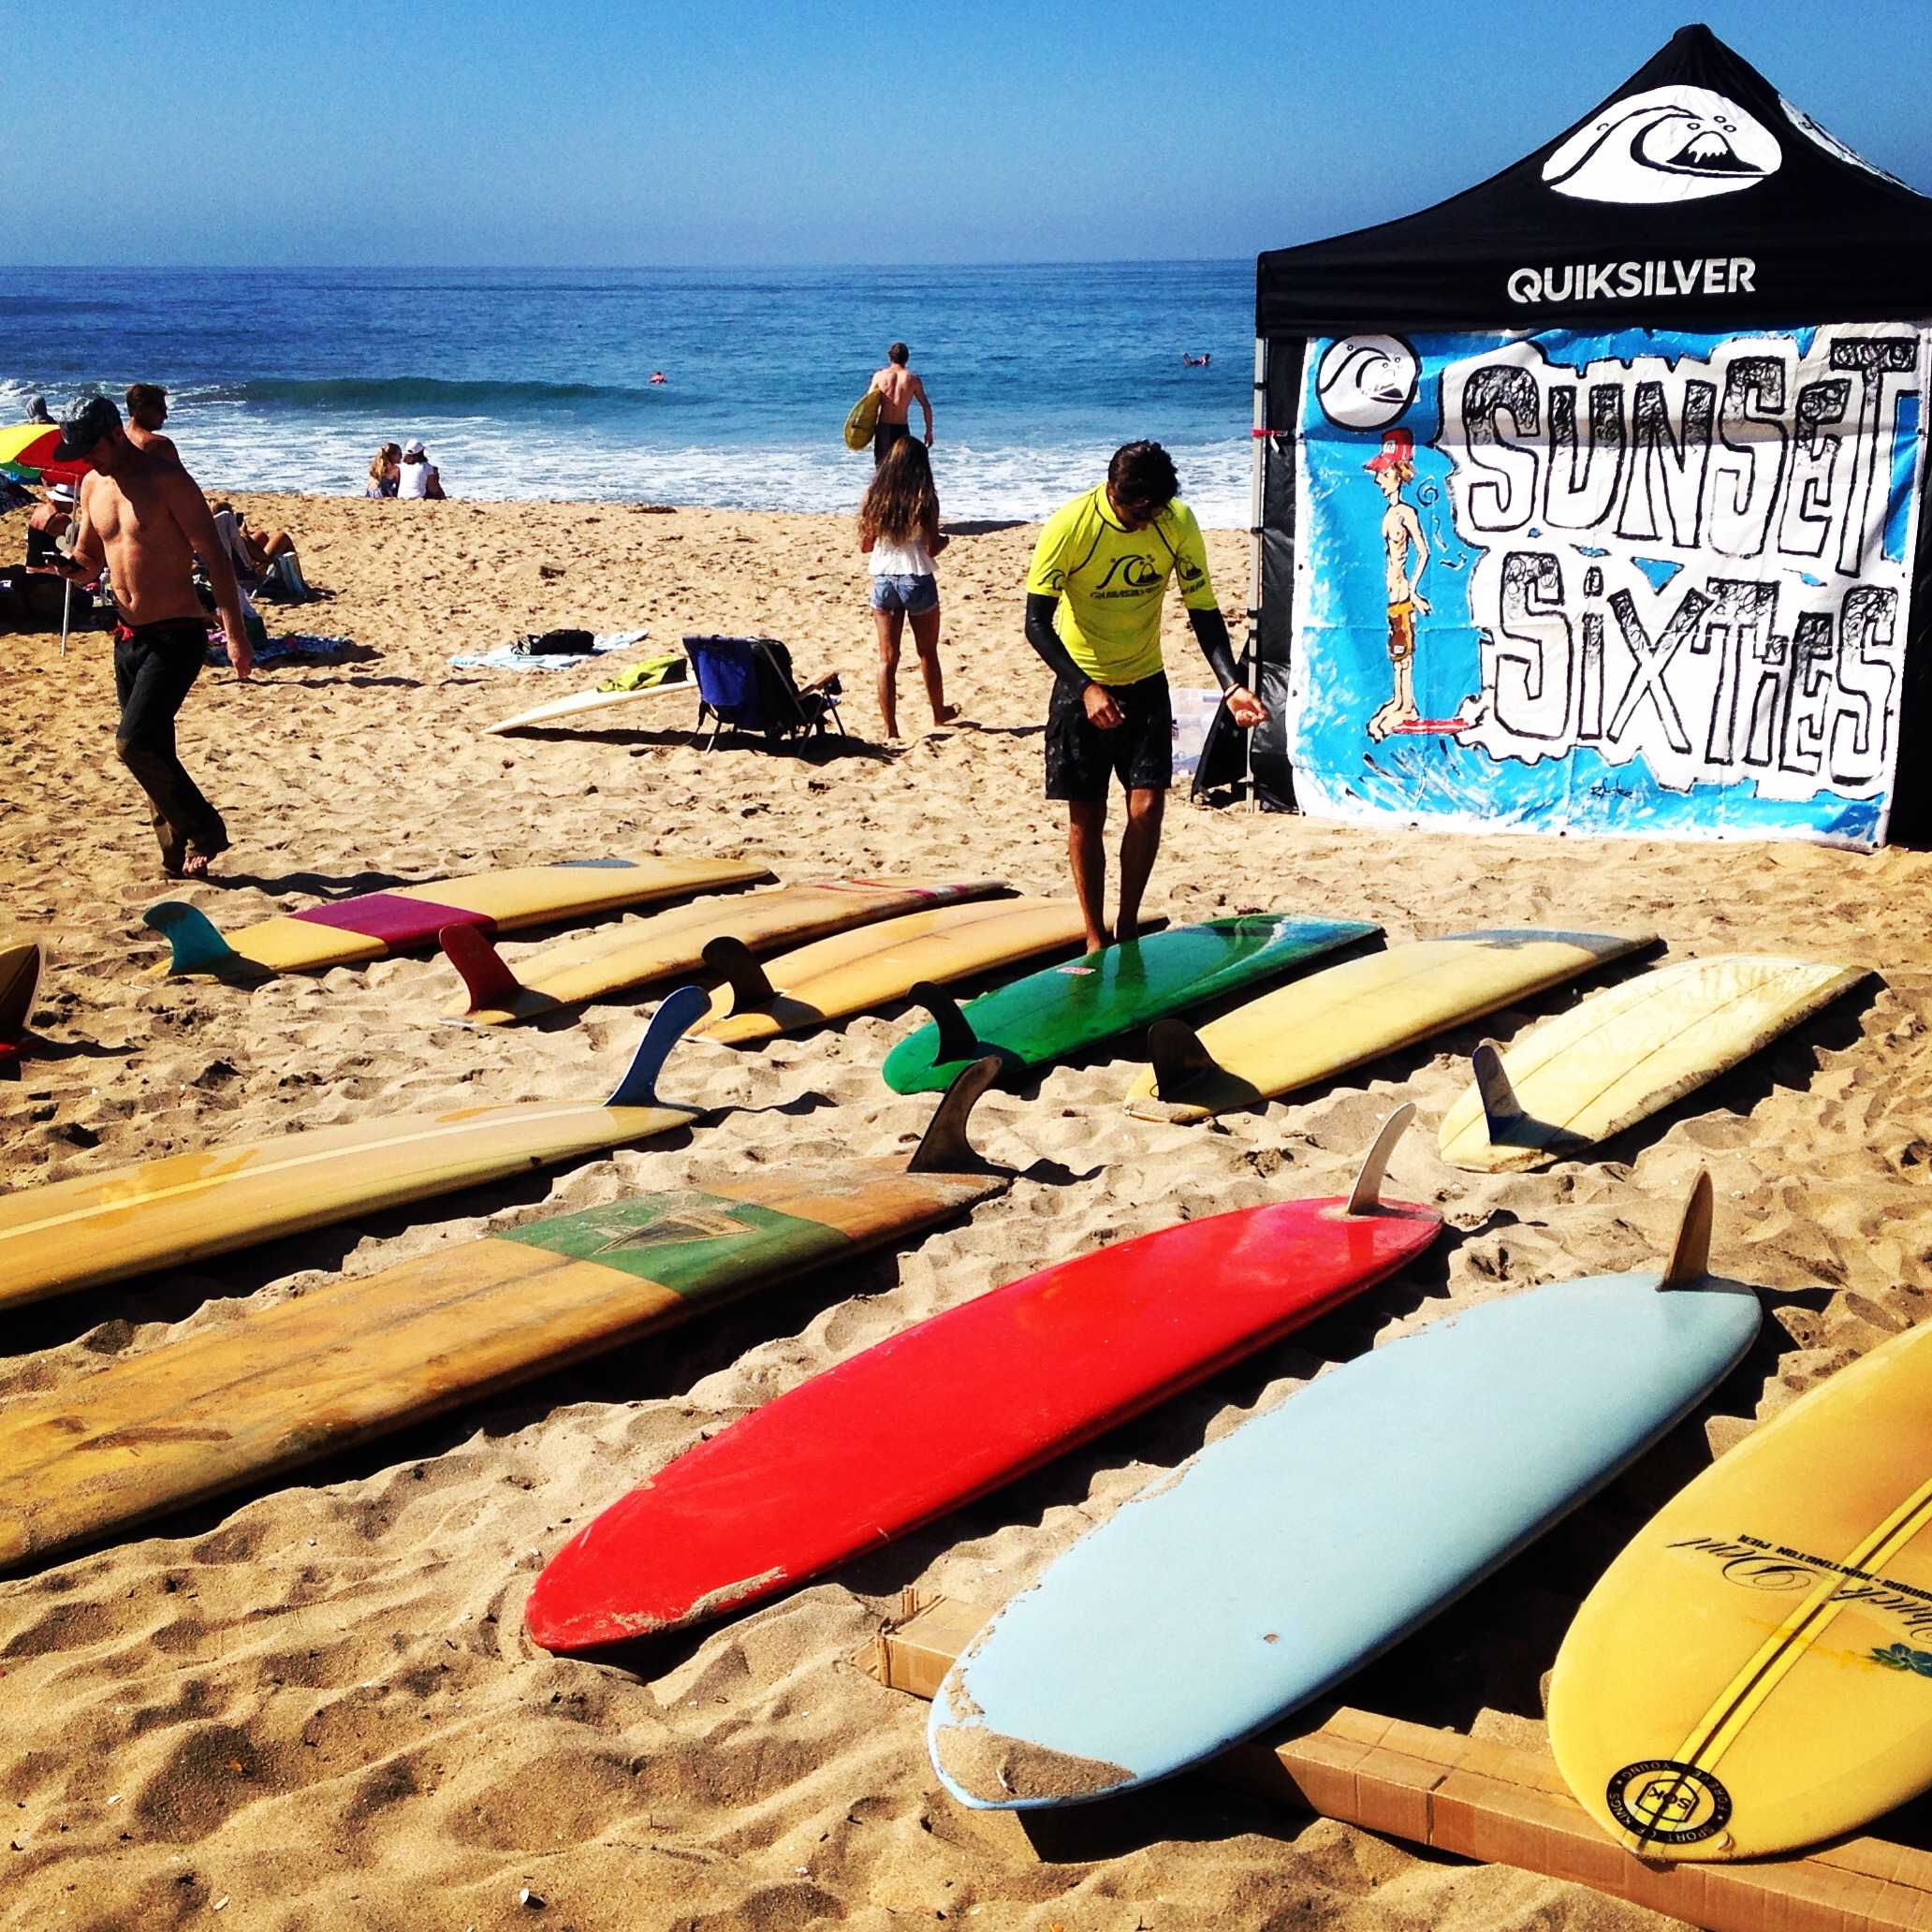 Vintage Surfboards at the Sunset Sixties event